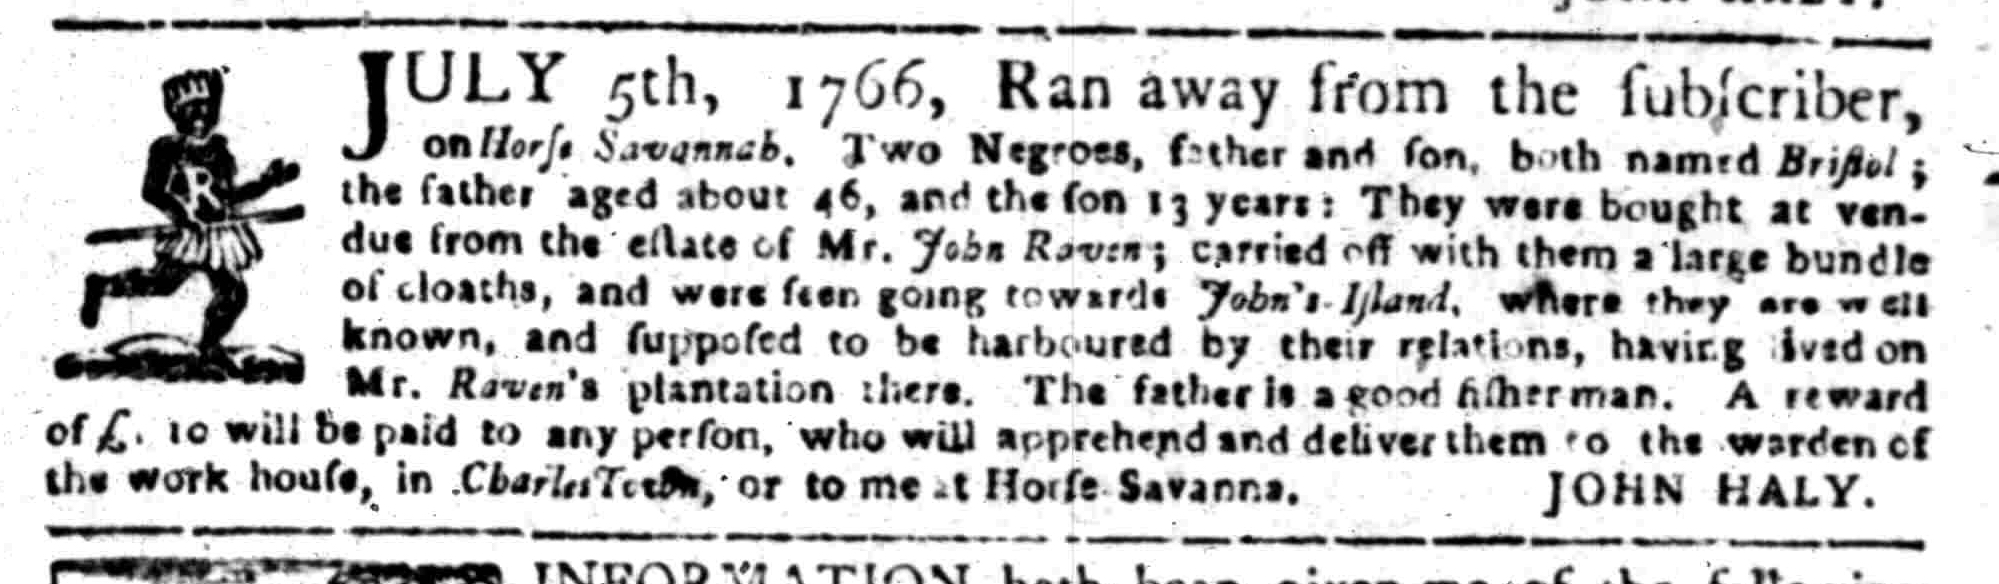 mar-9-south-carolina-gazette-supplement-slavery-2